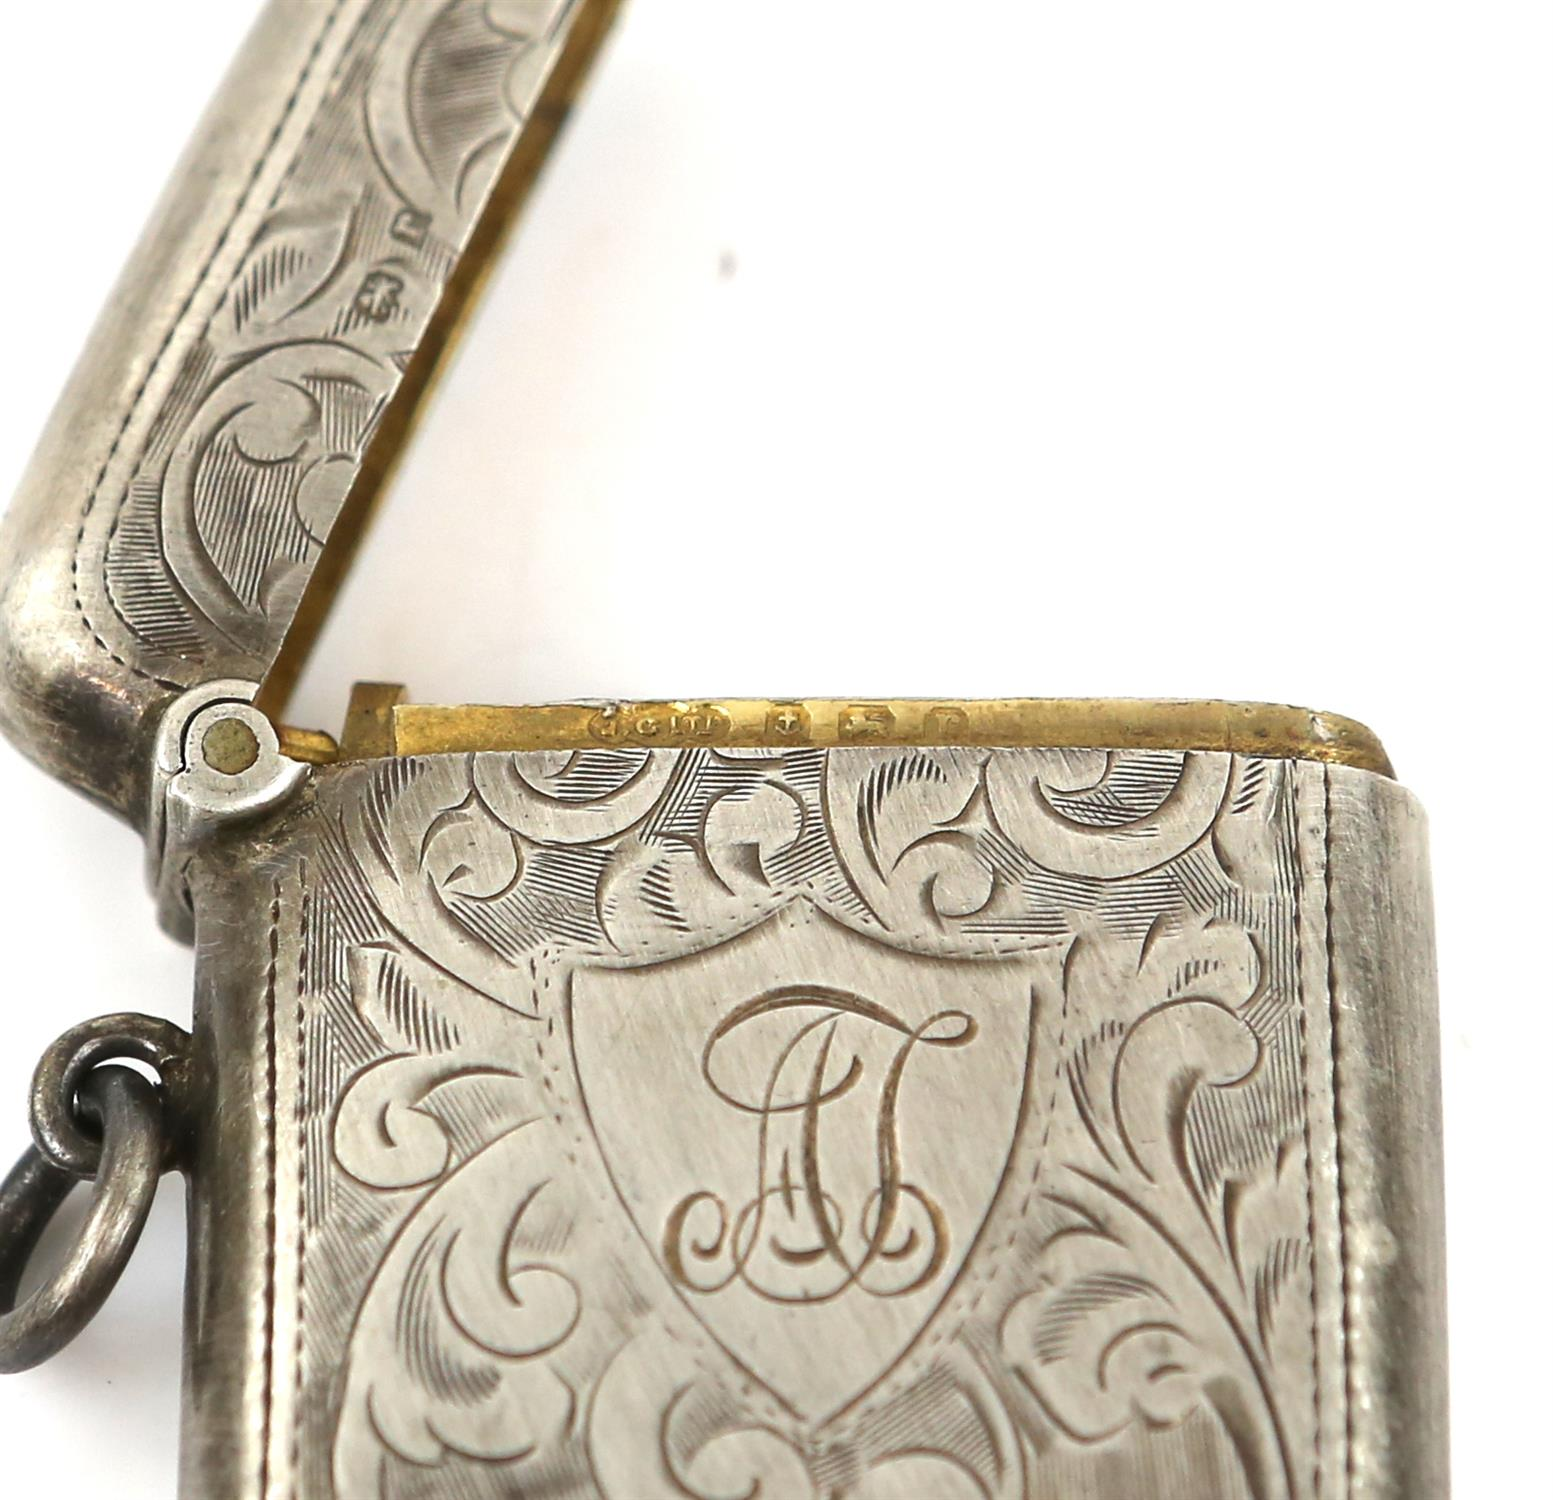 American sterling silver pepperette with floral embossed ddecoration, marked Sterling, - Image 12 of 18